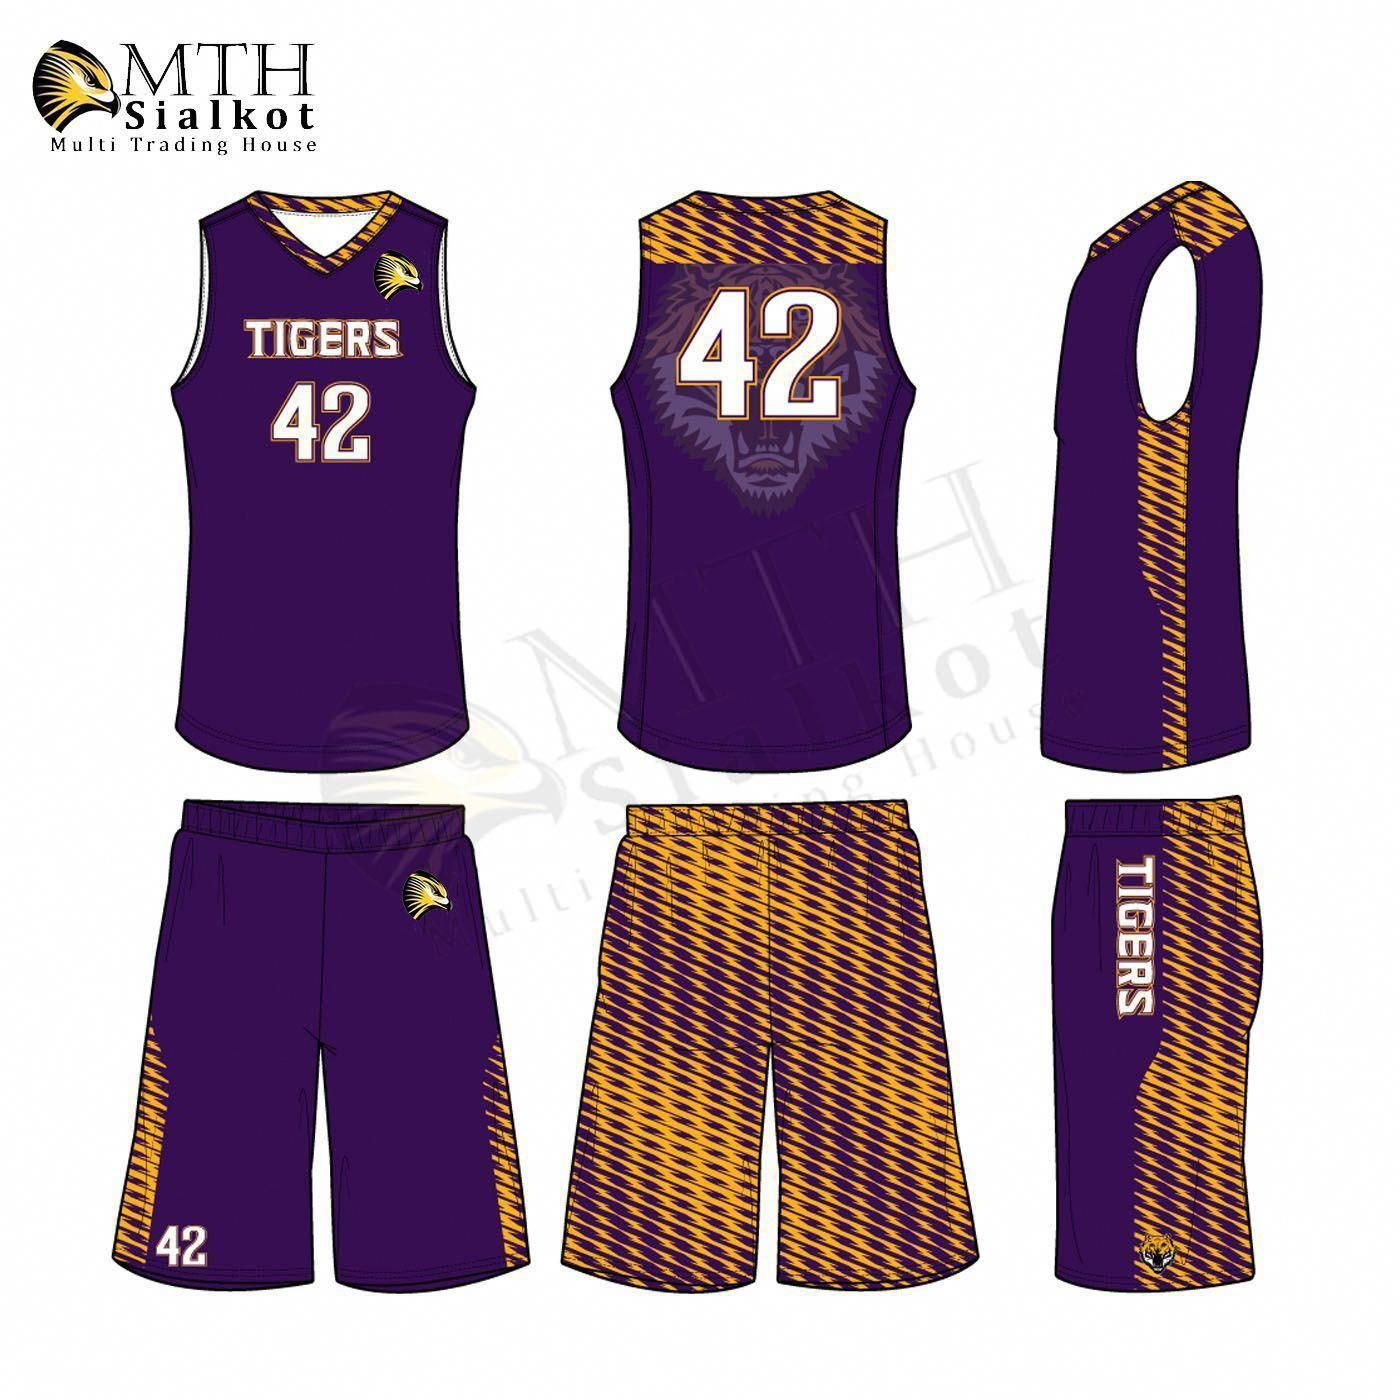 Custom Sublimated Basketball Uniforms Order today basketball uniforms f339038c3